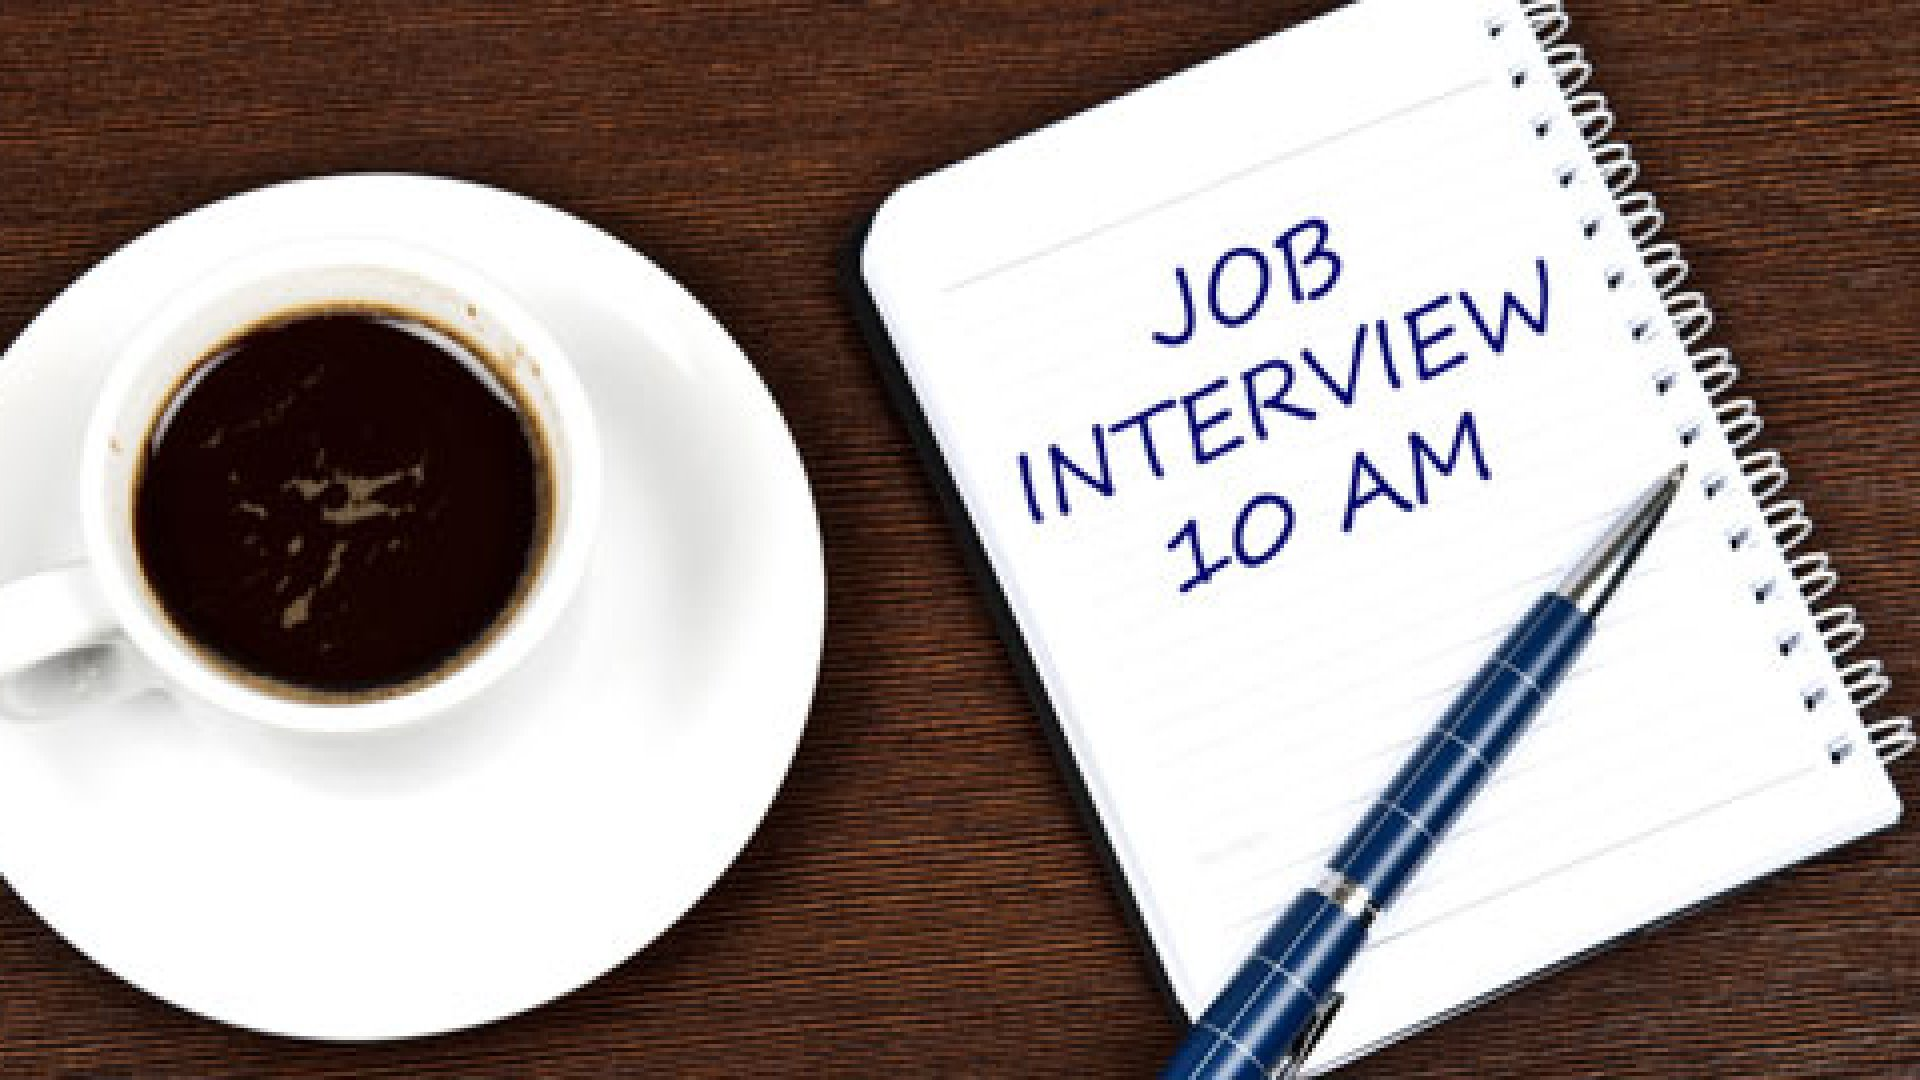 5 Things I Look for in a Great Job Interview